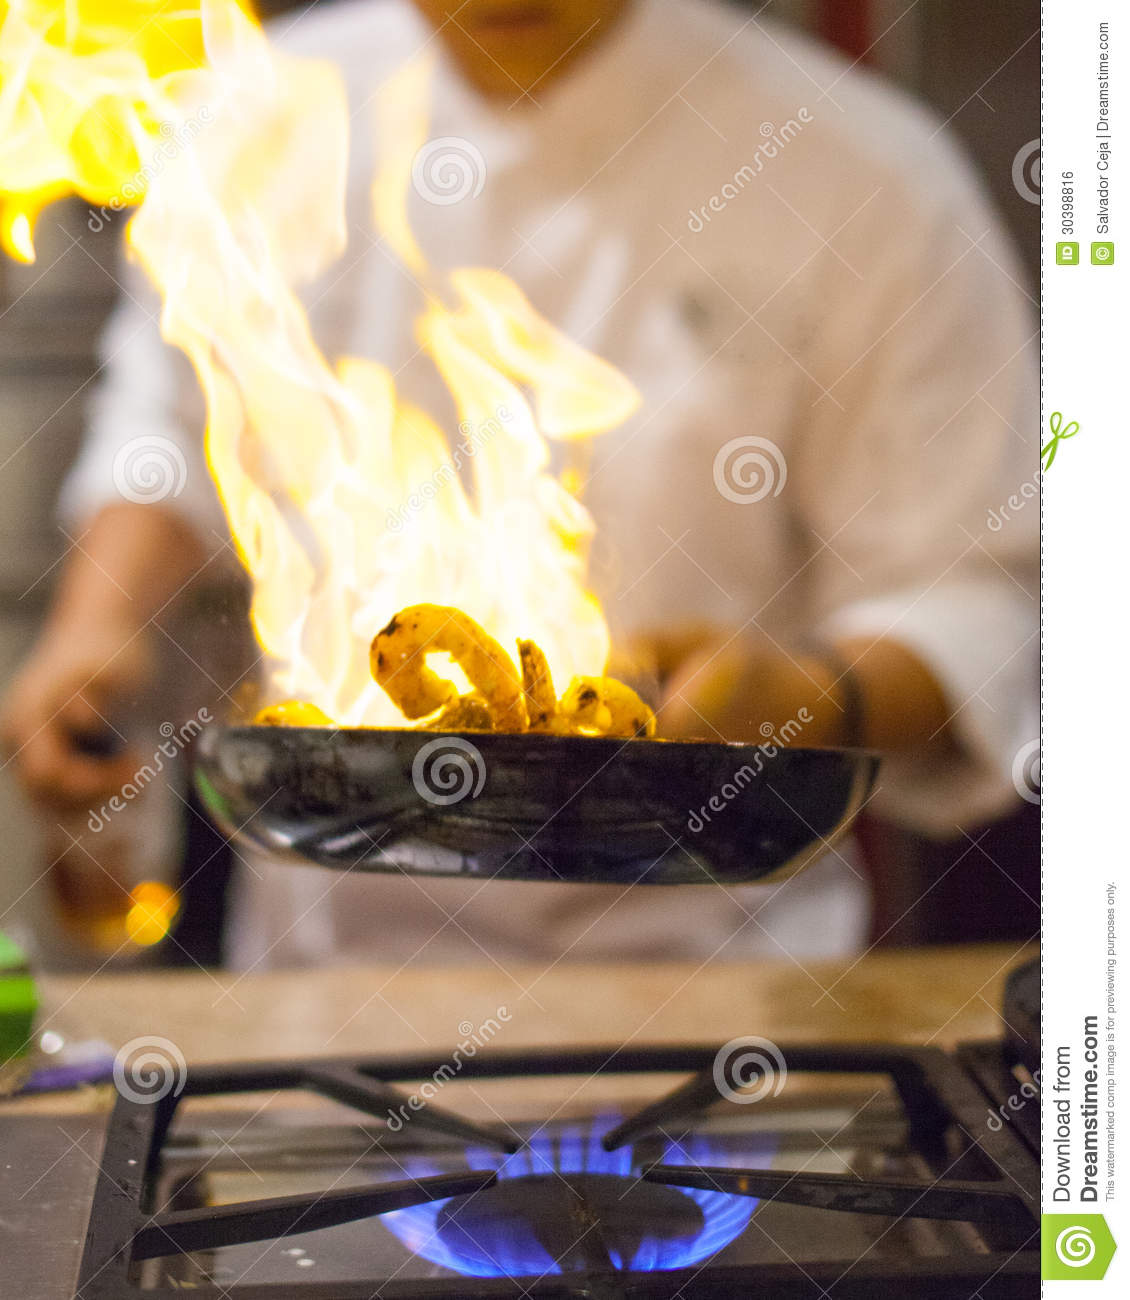 Blue Flame Kitchen: Chef Cooking Royalty Free Stock Image